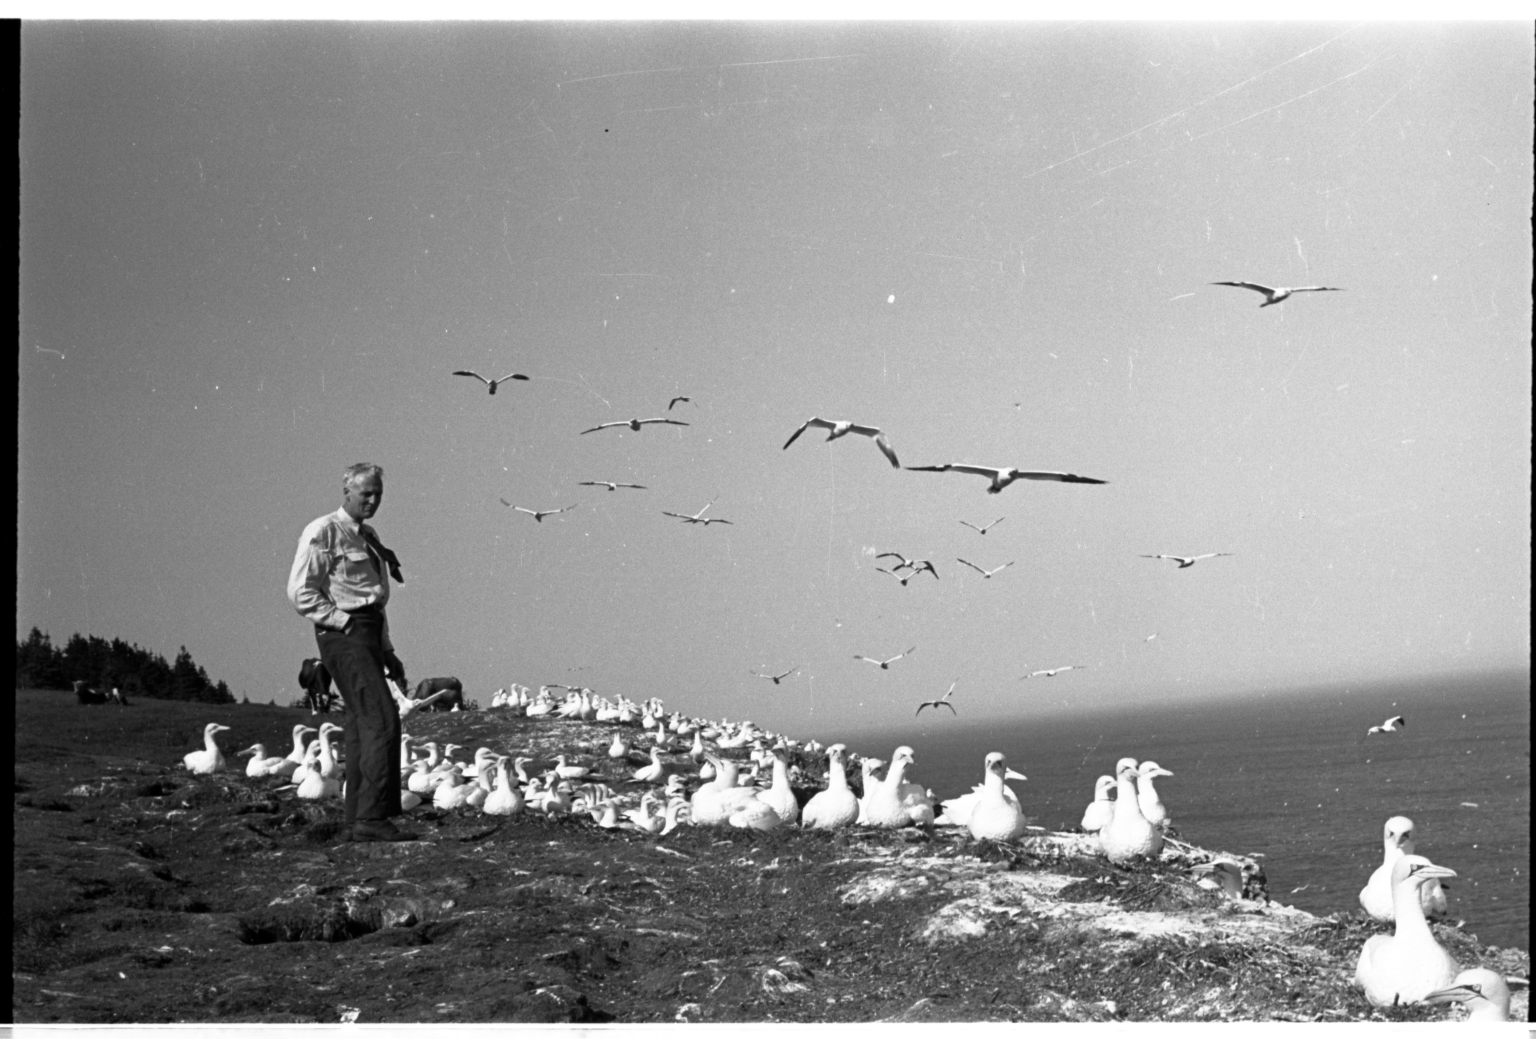 Field trip to study gannets for new exhibit Bonaventure Island